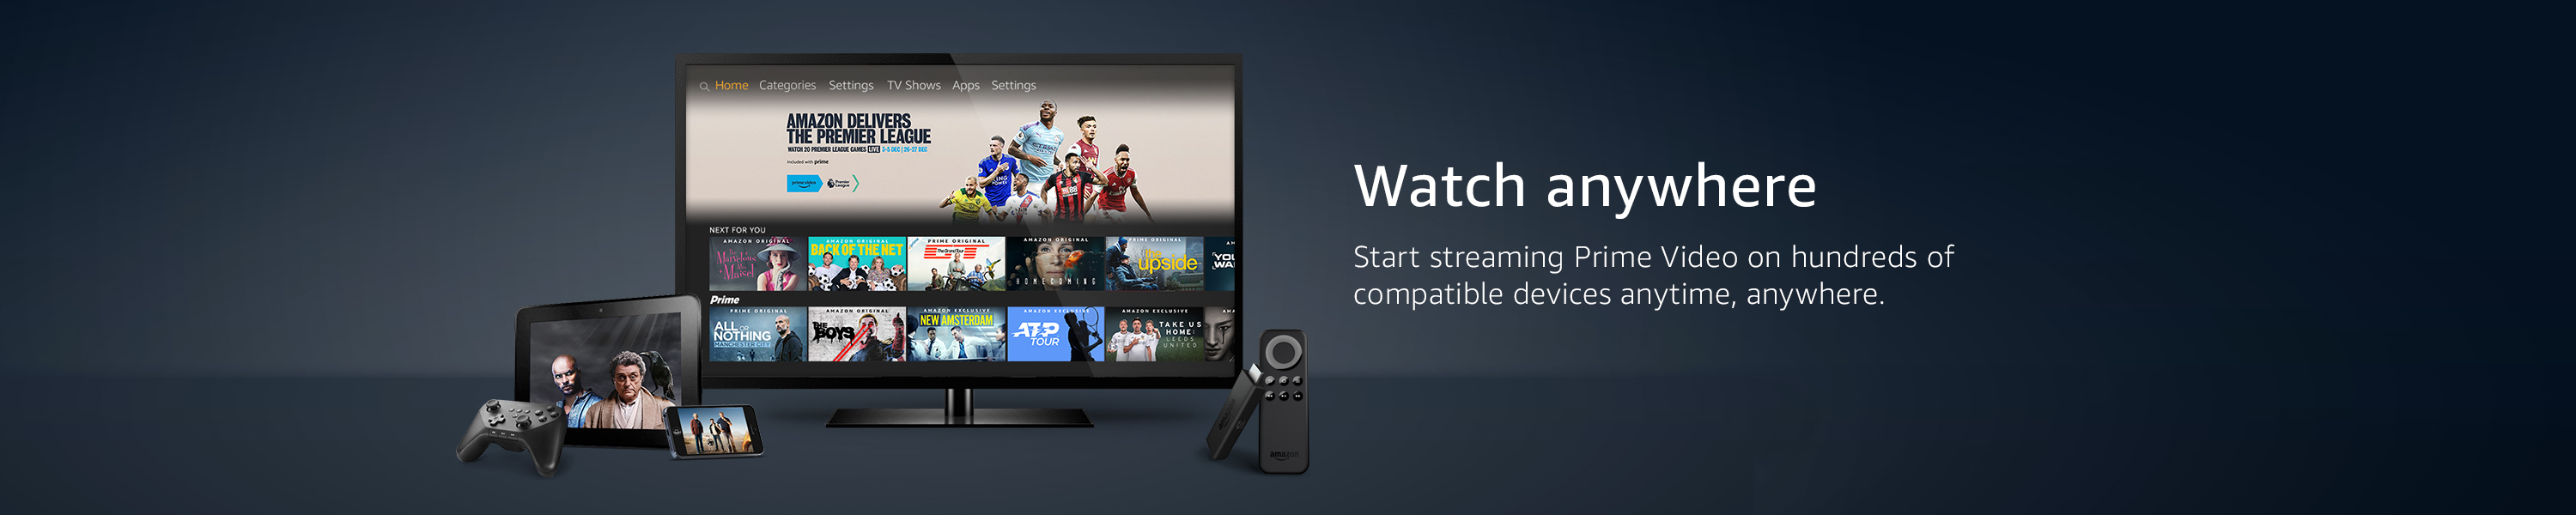 Watch Prime Video anywhere